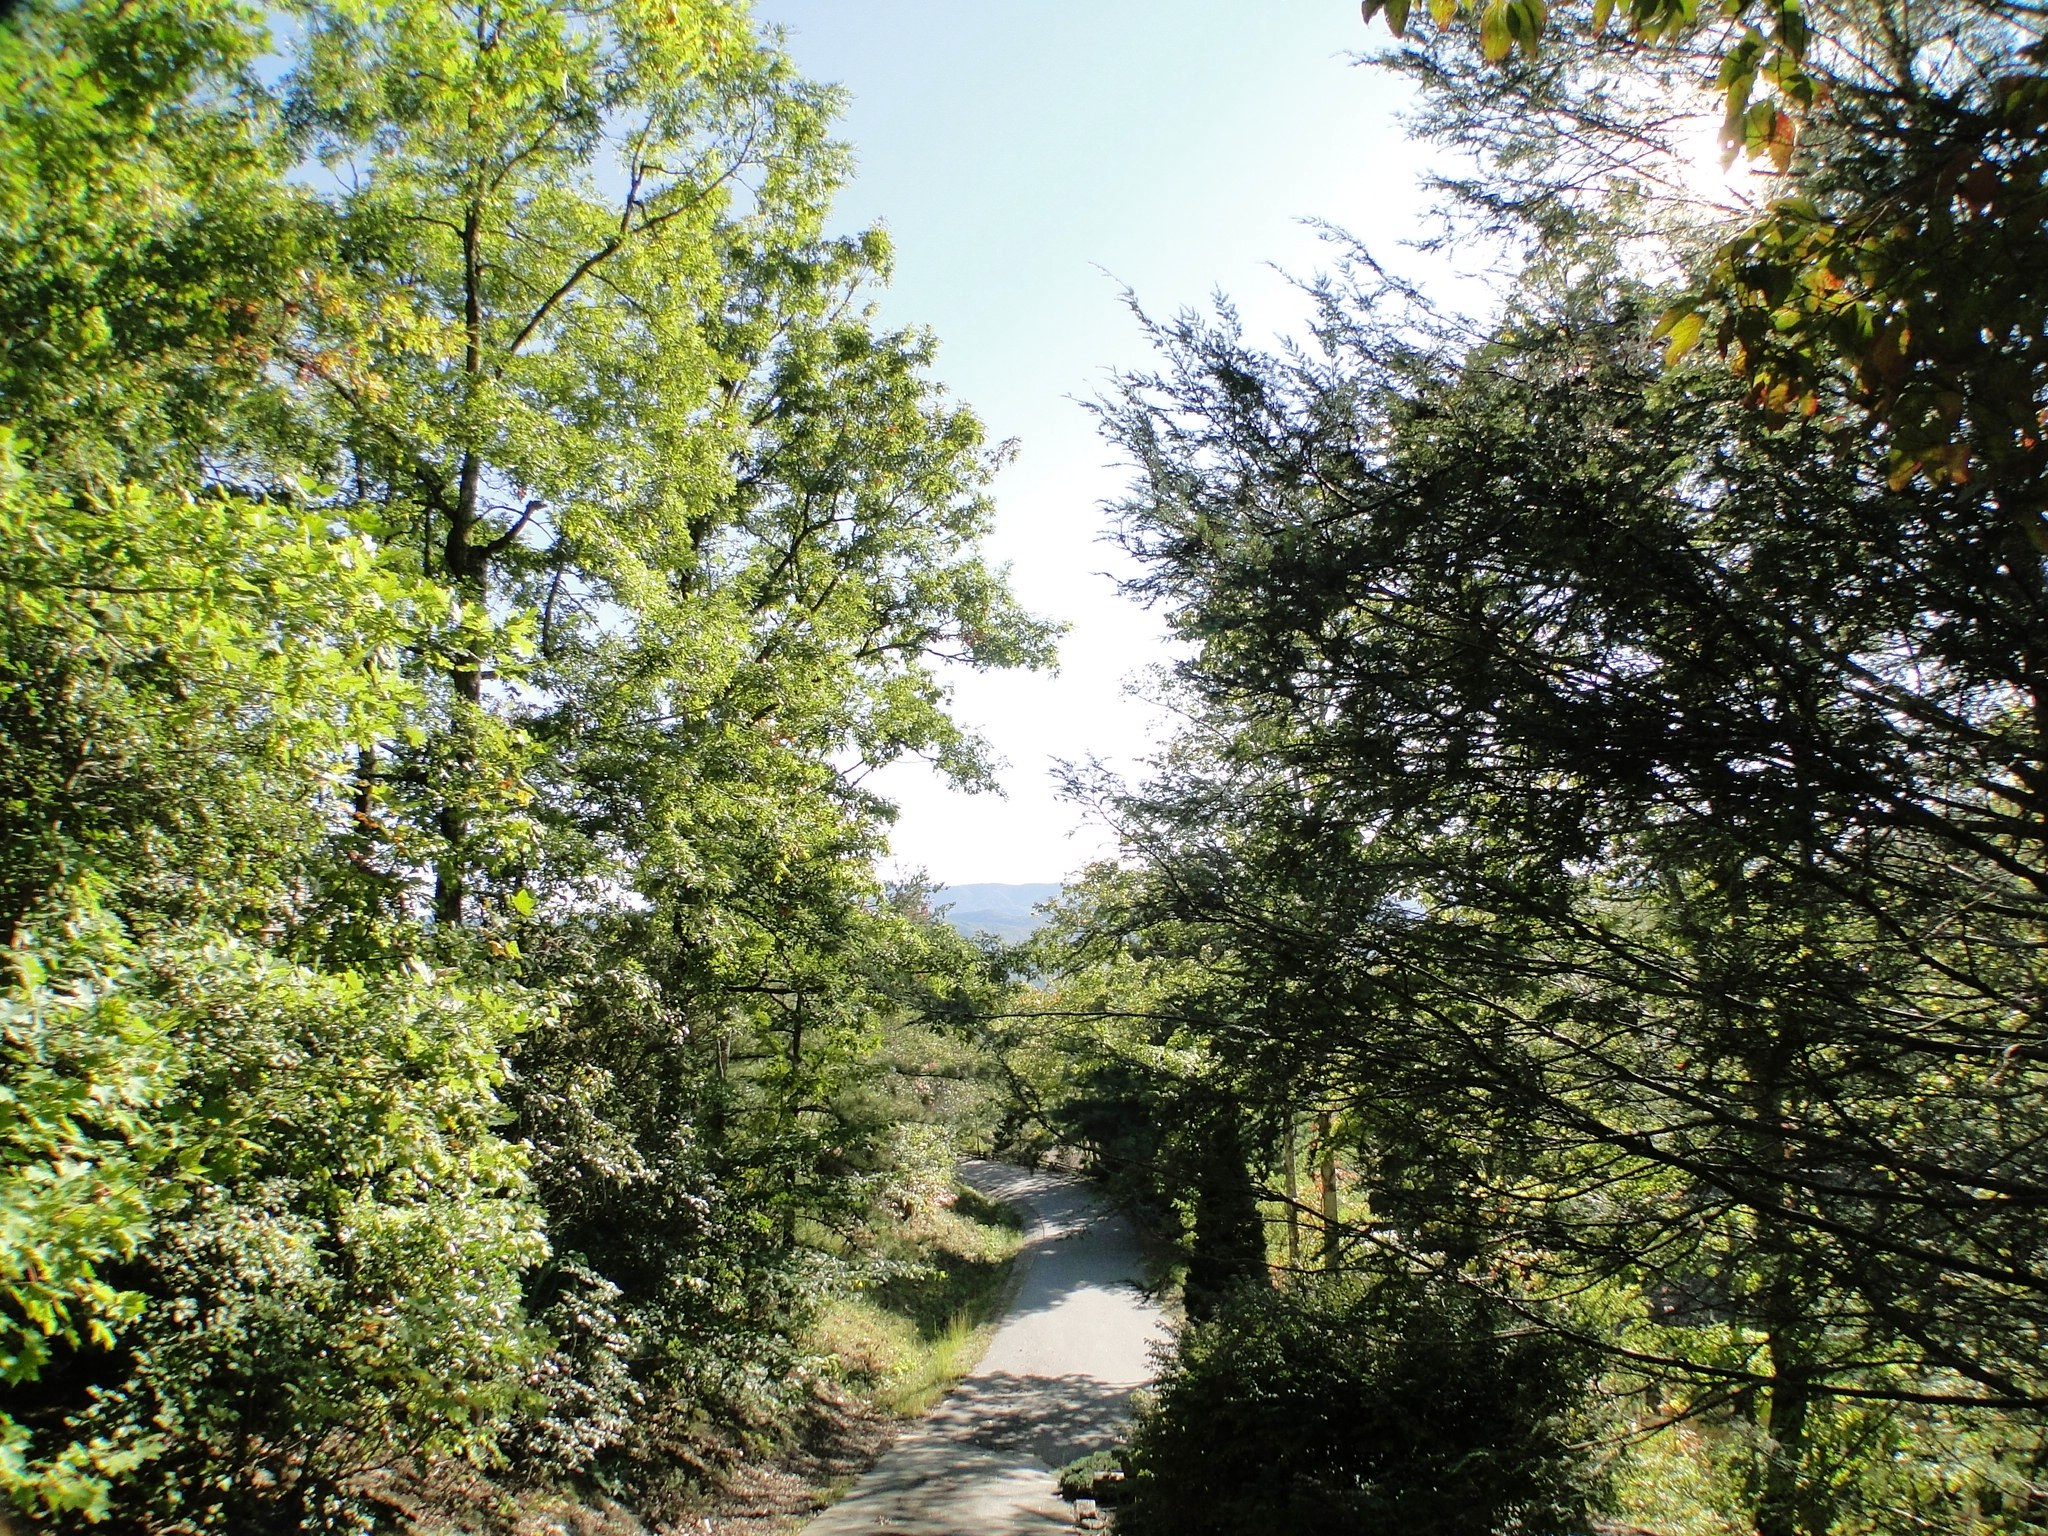 real estate in franklin nc, bald head the realtor, franklin nc real estate for sale, homes for sale in the mountains of franklin nc, 625 woodland heights drive franklin nc